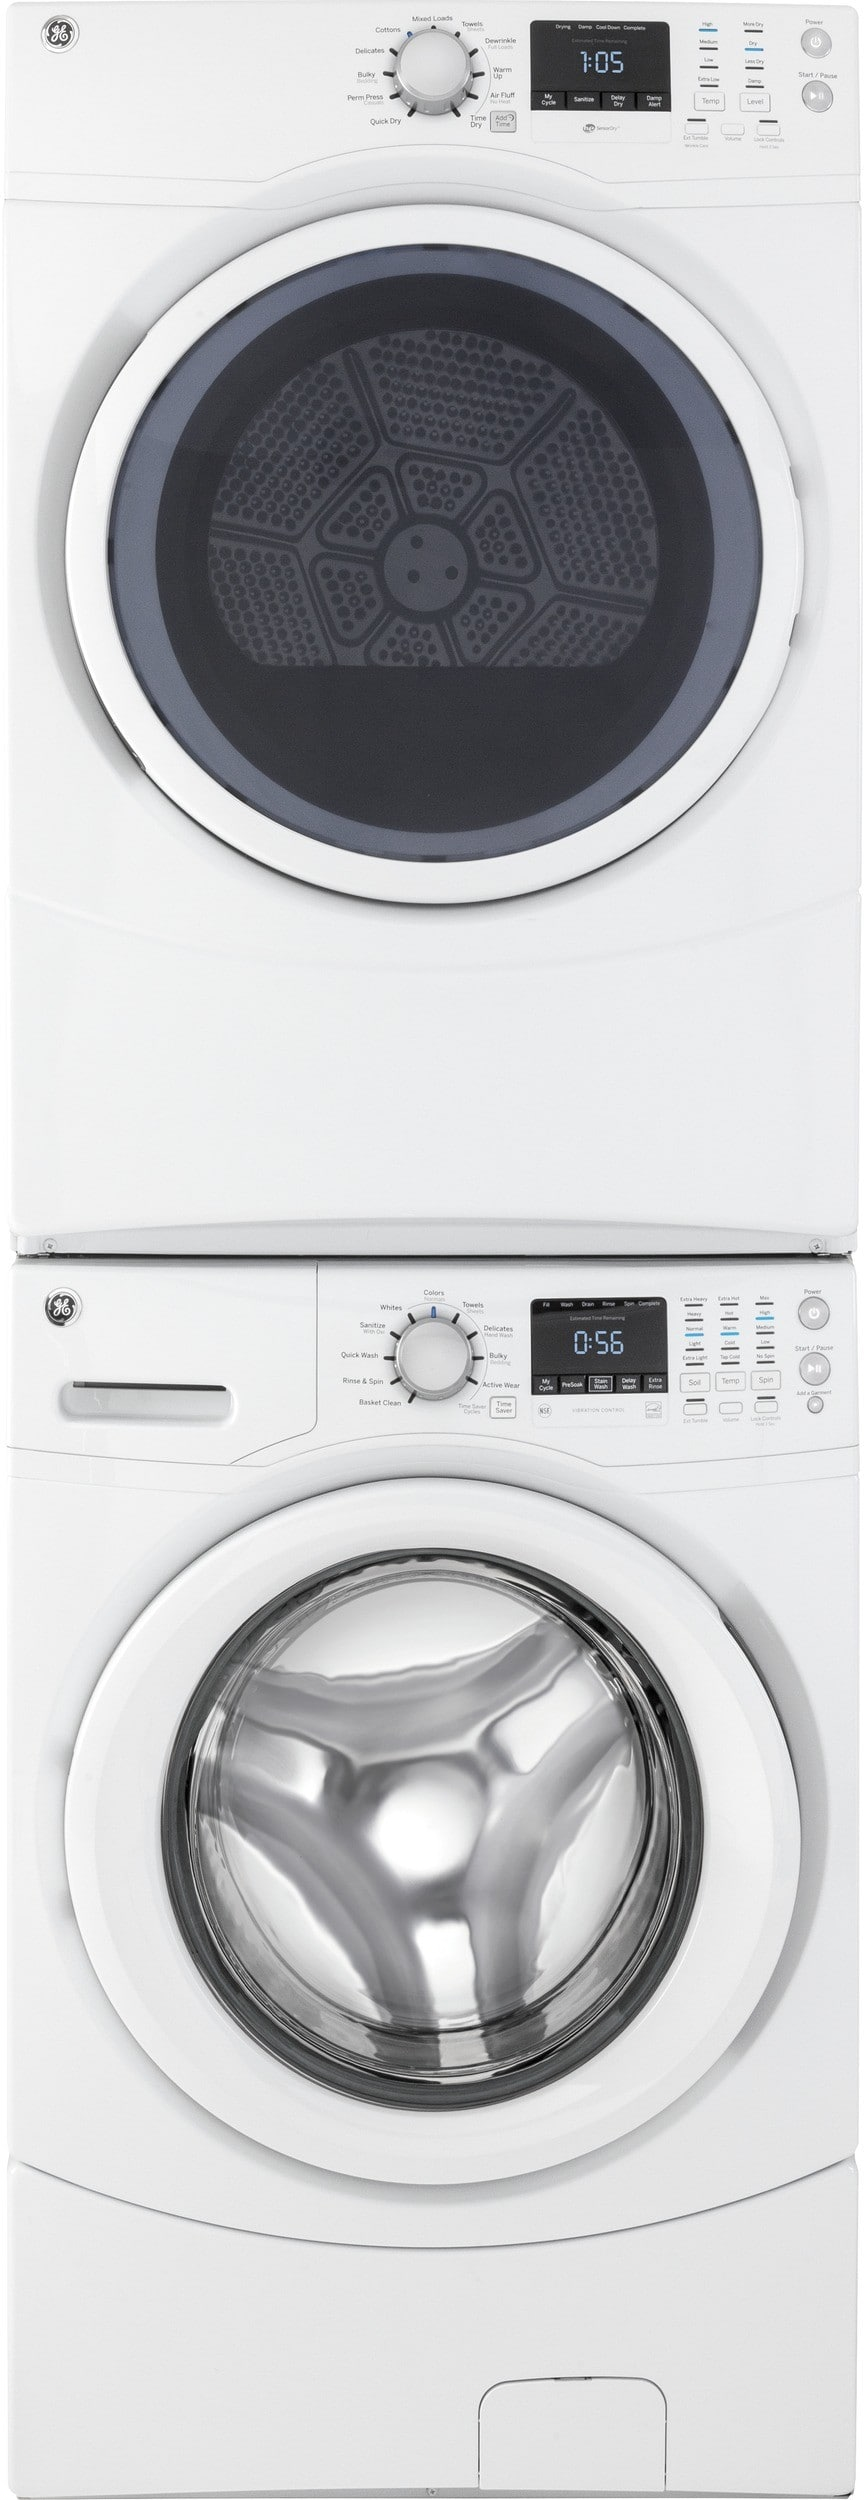 ge gewadrgw52 stacked washer dryer set with front load washer and gas dryer in white. Black Bedroom Furniture Sets. Home Design Ideas